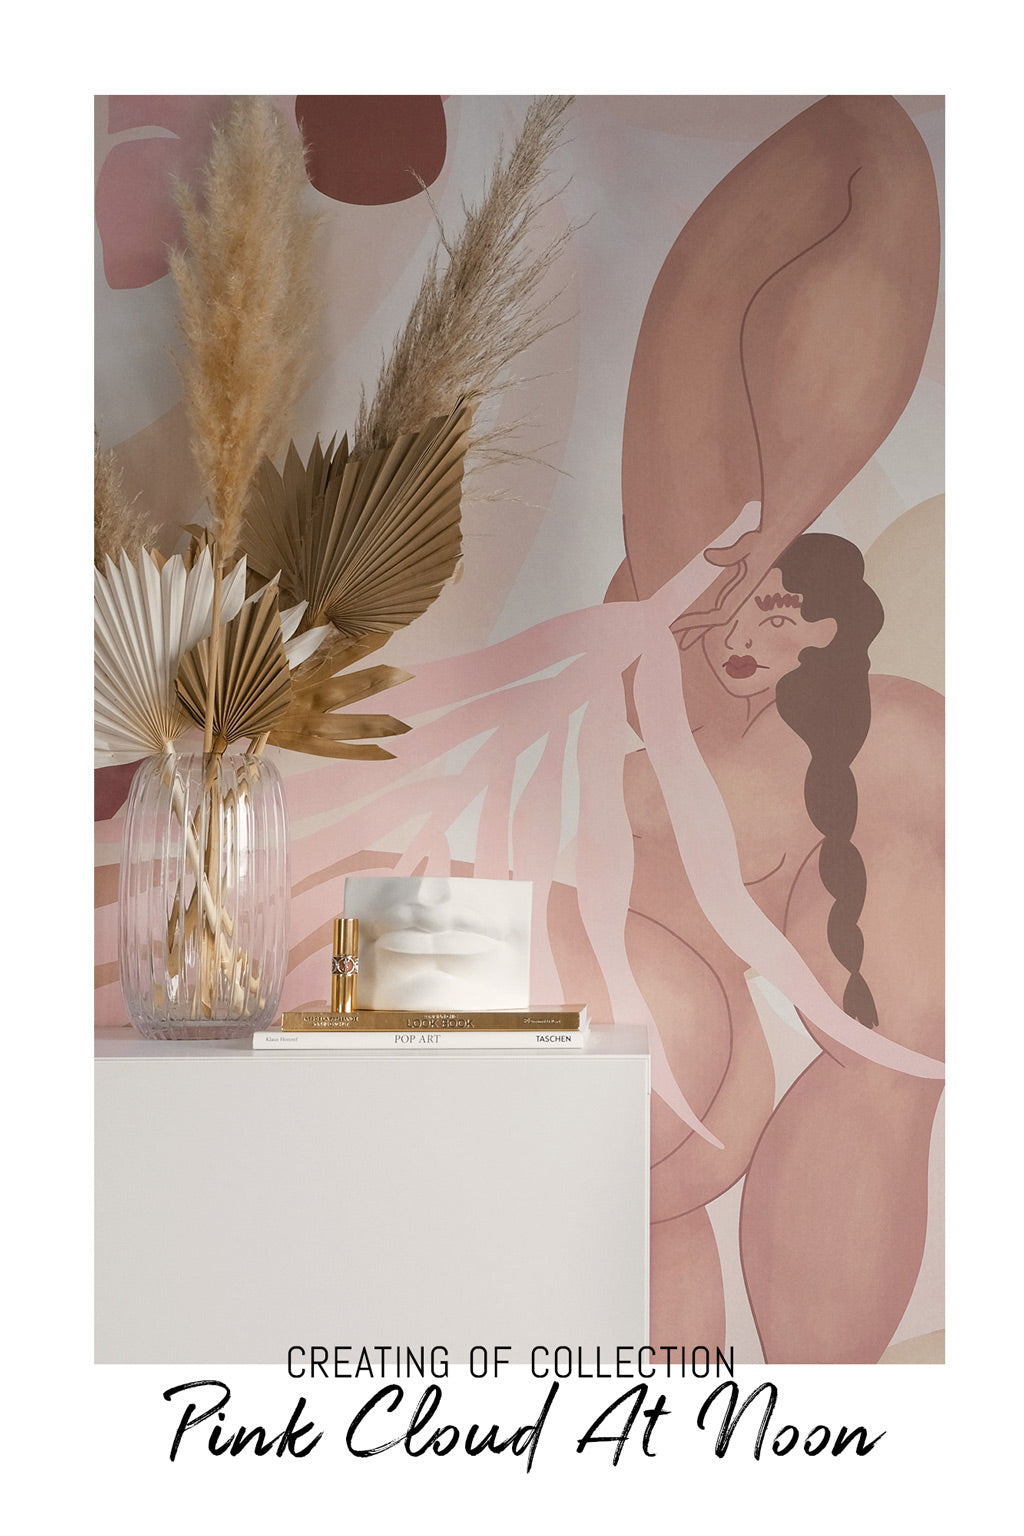 Modern bohemian style wall art collection emphasising powerful female figure